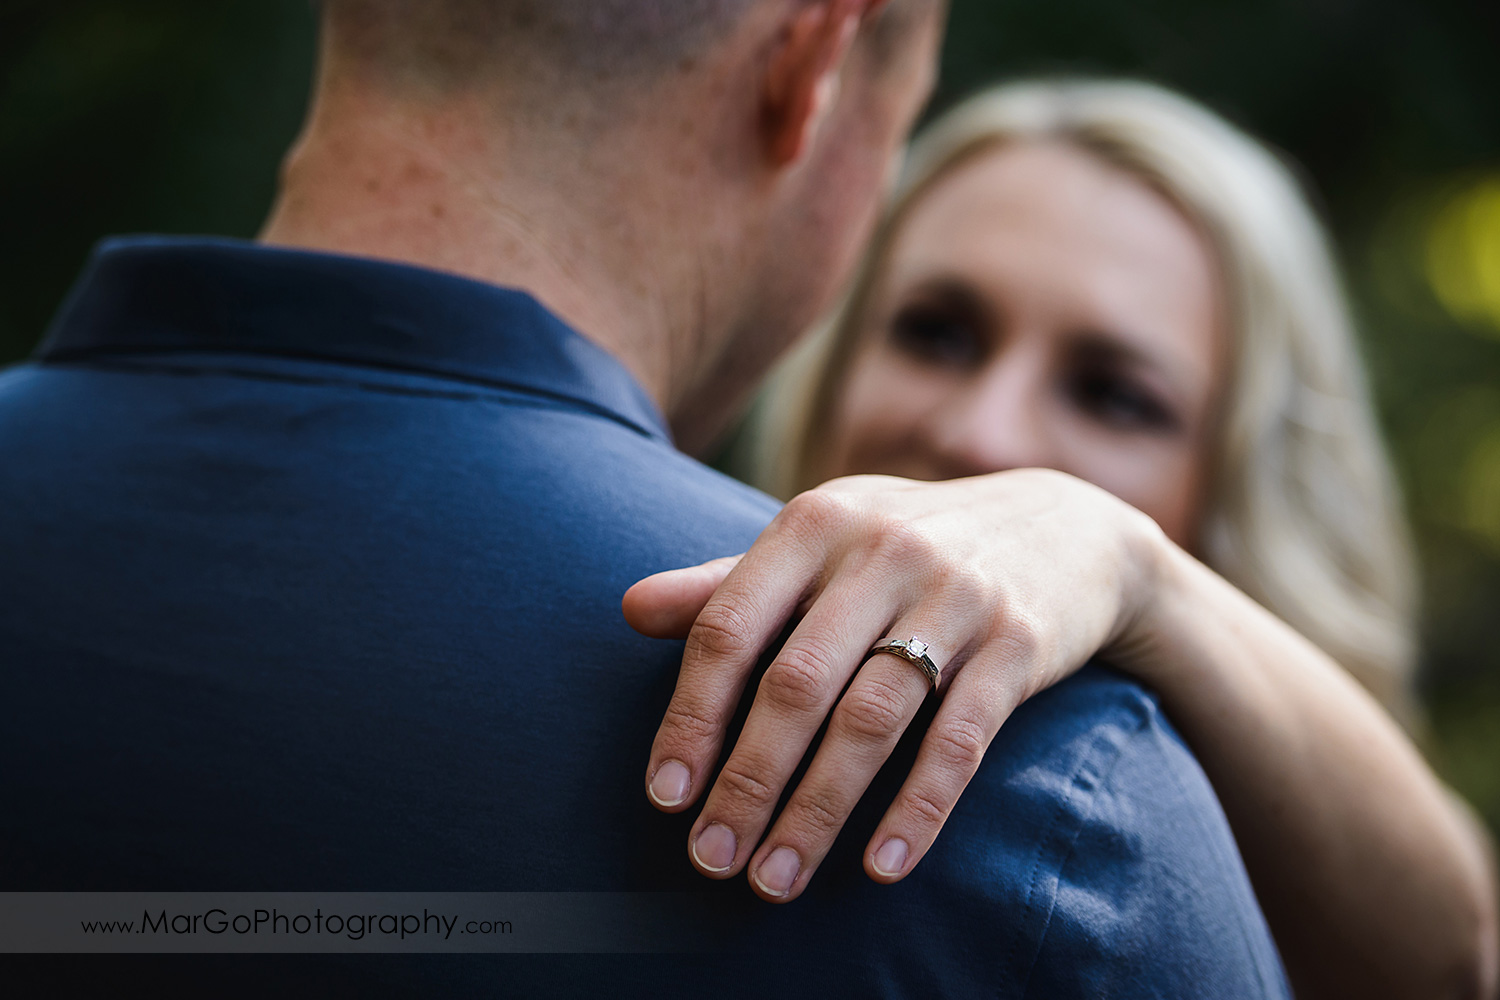 ring shot of woman holding hand on arm of man in navy blue shirt during engagement session at San Francisco Golden Gate Park